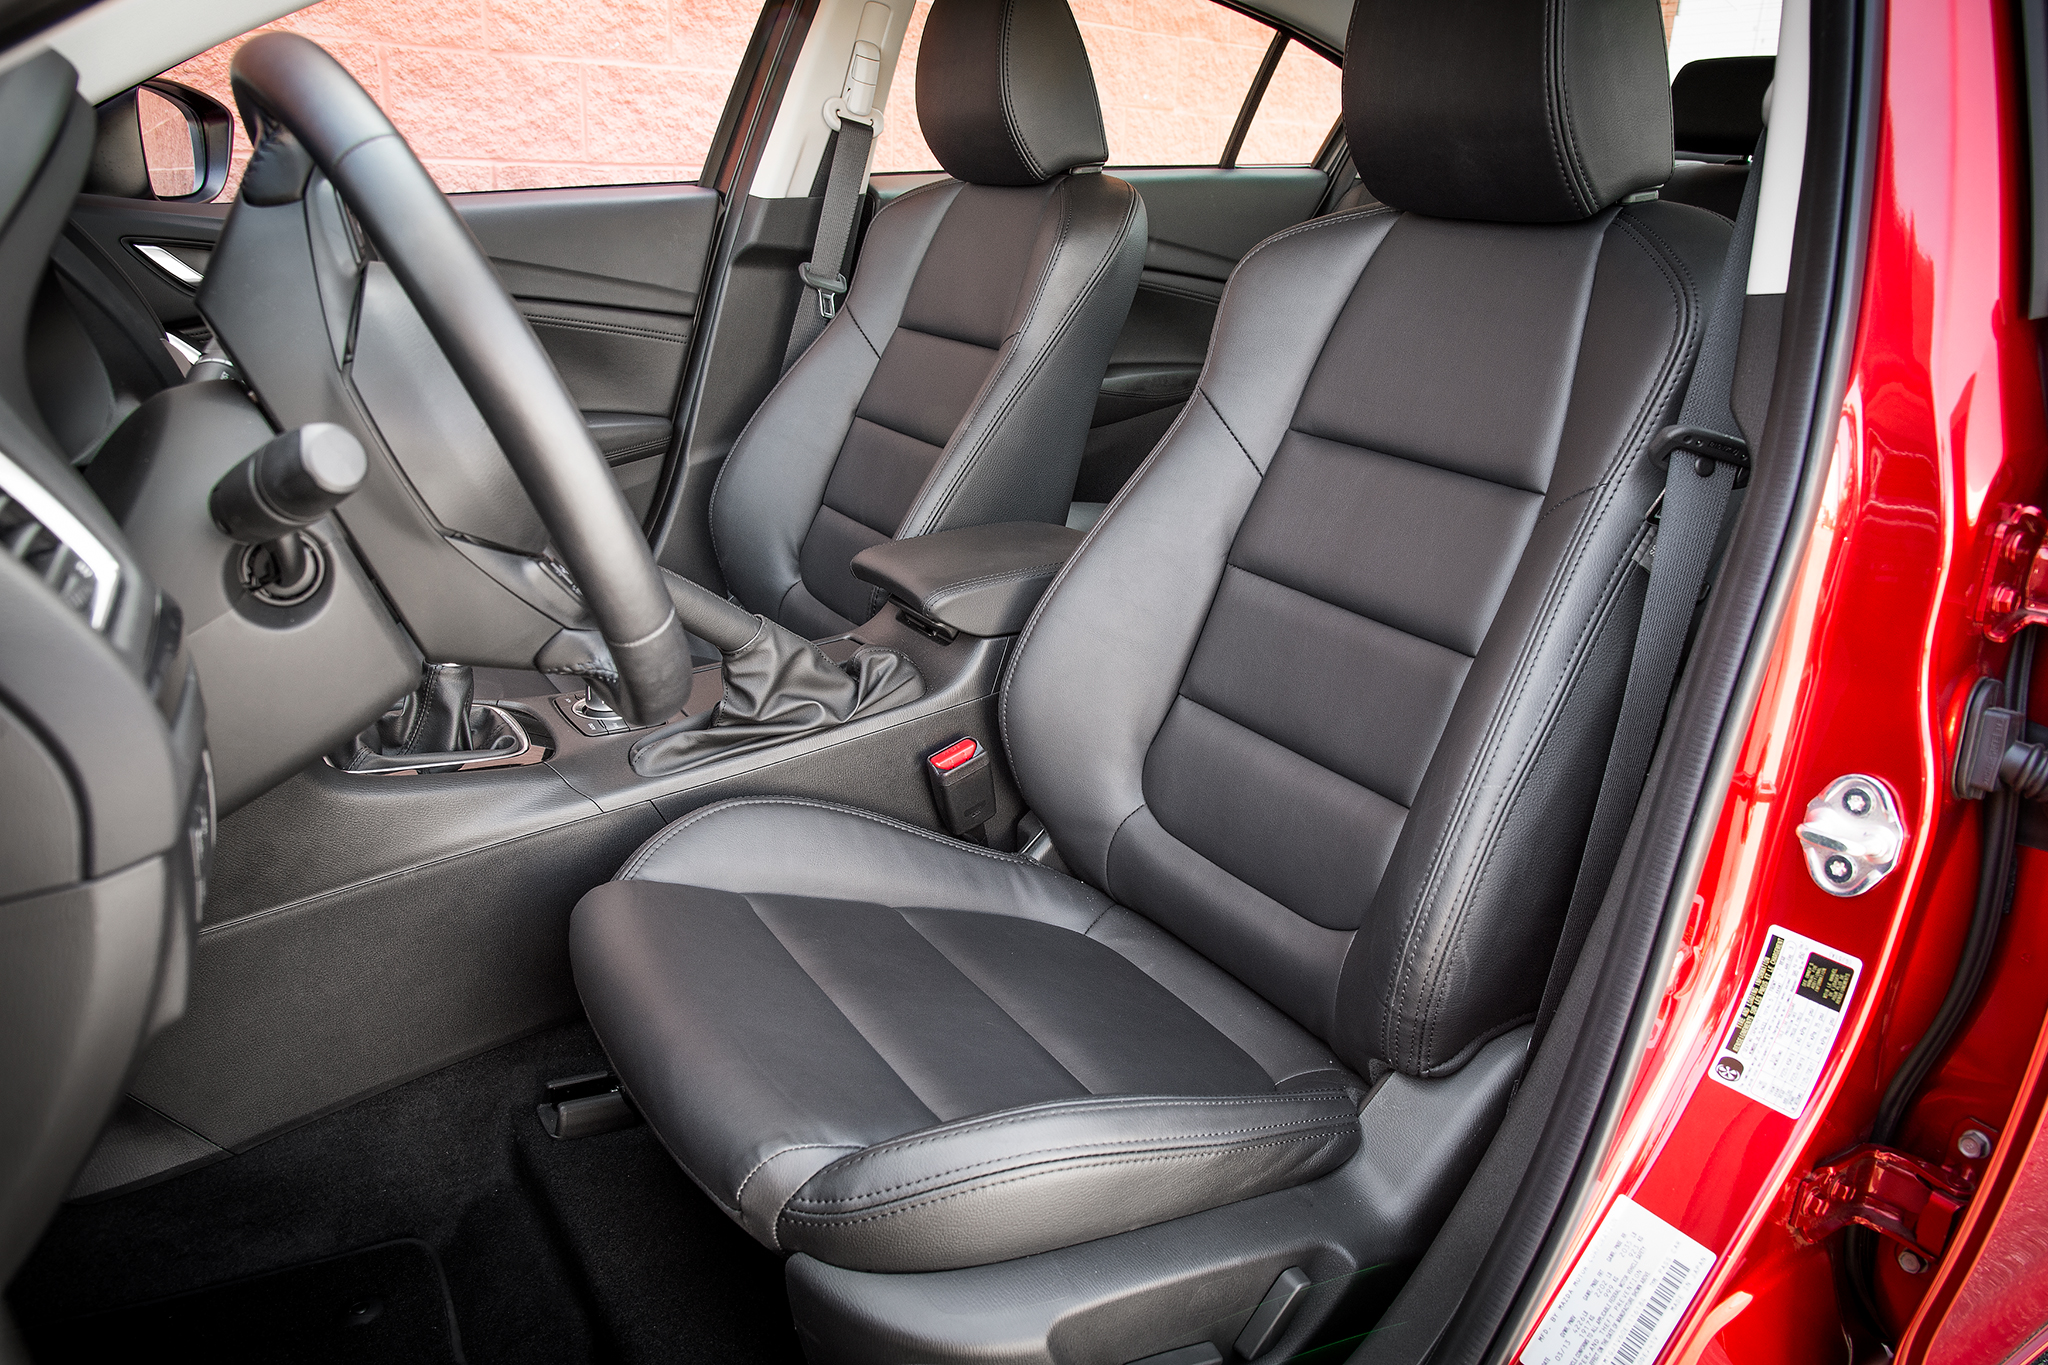 2015 Mazda 6 Front Seats Preview